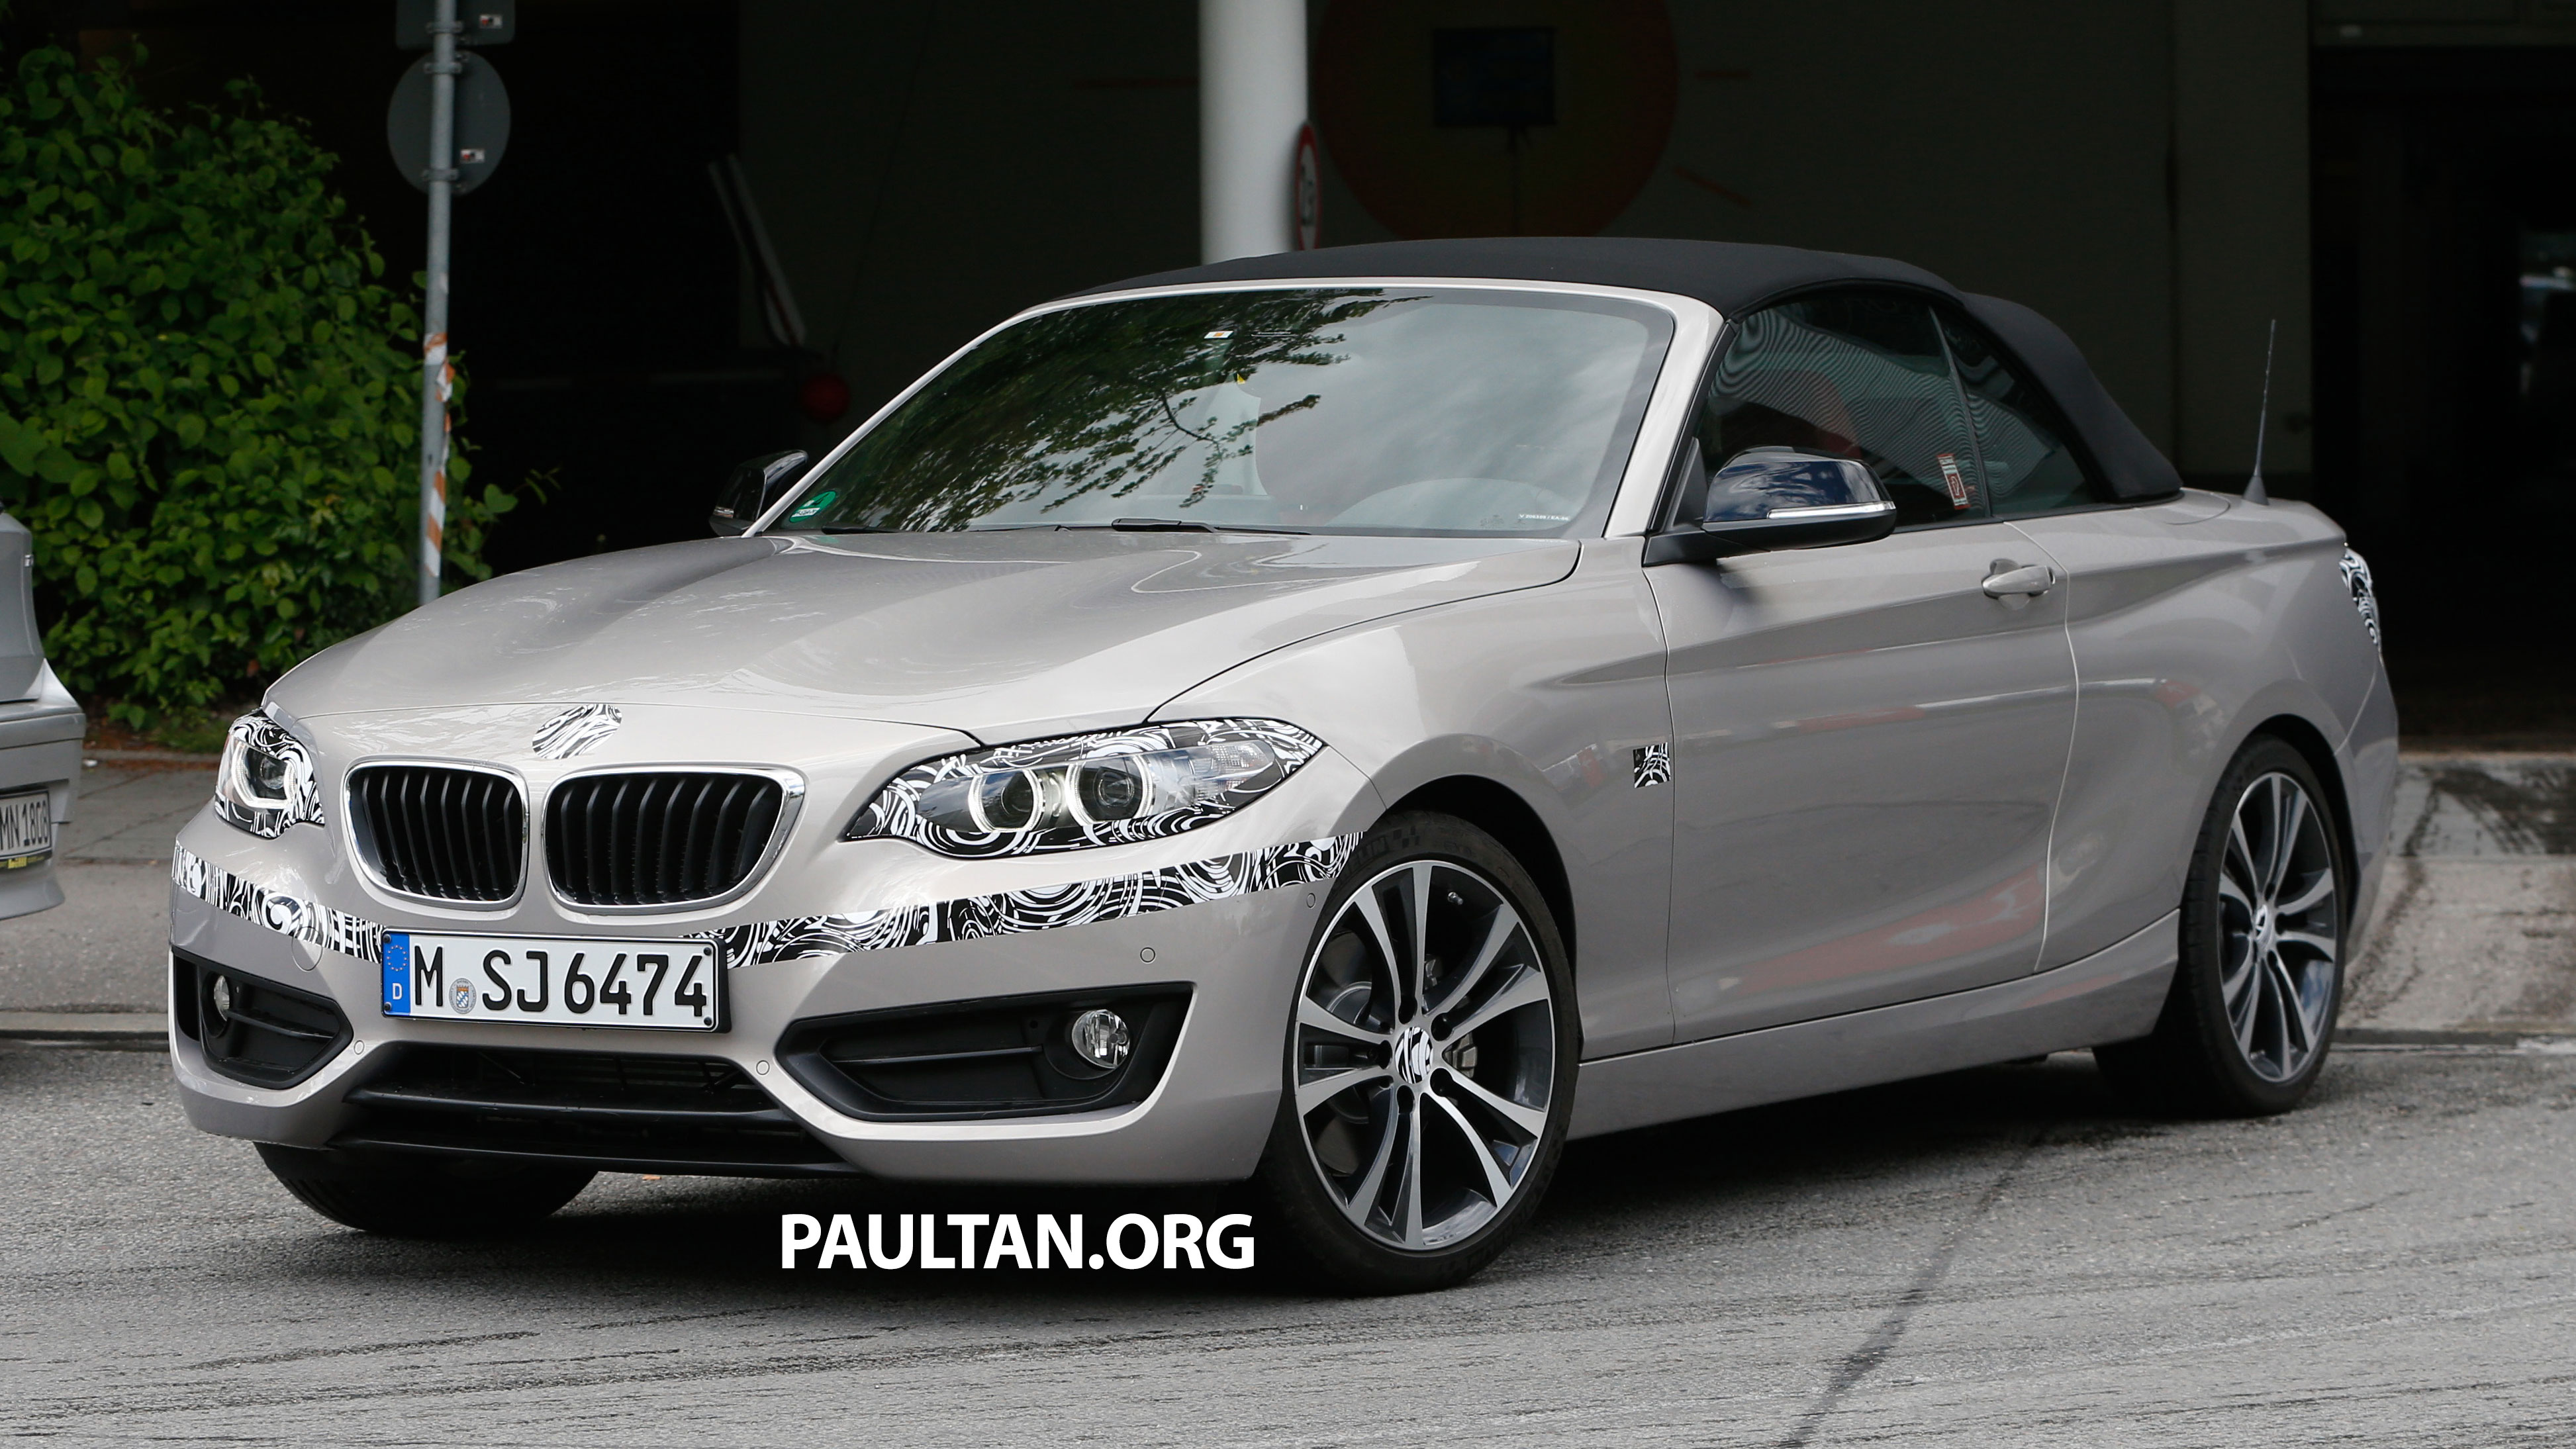 Bmw 2 Series Cabriolet Spied Nearly Undisguised Paul Tan